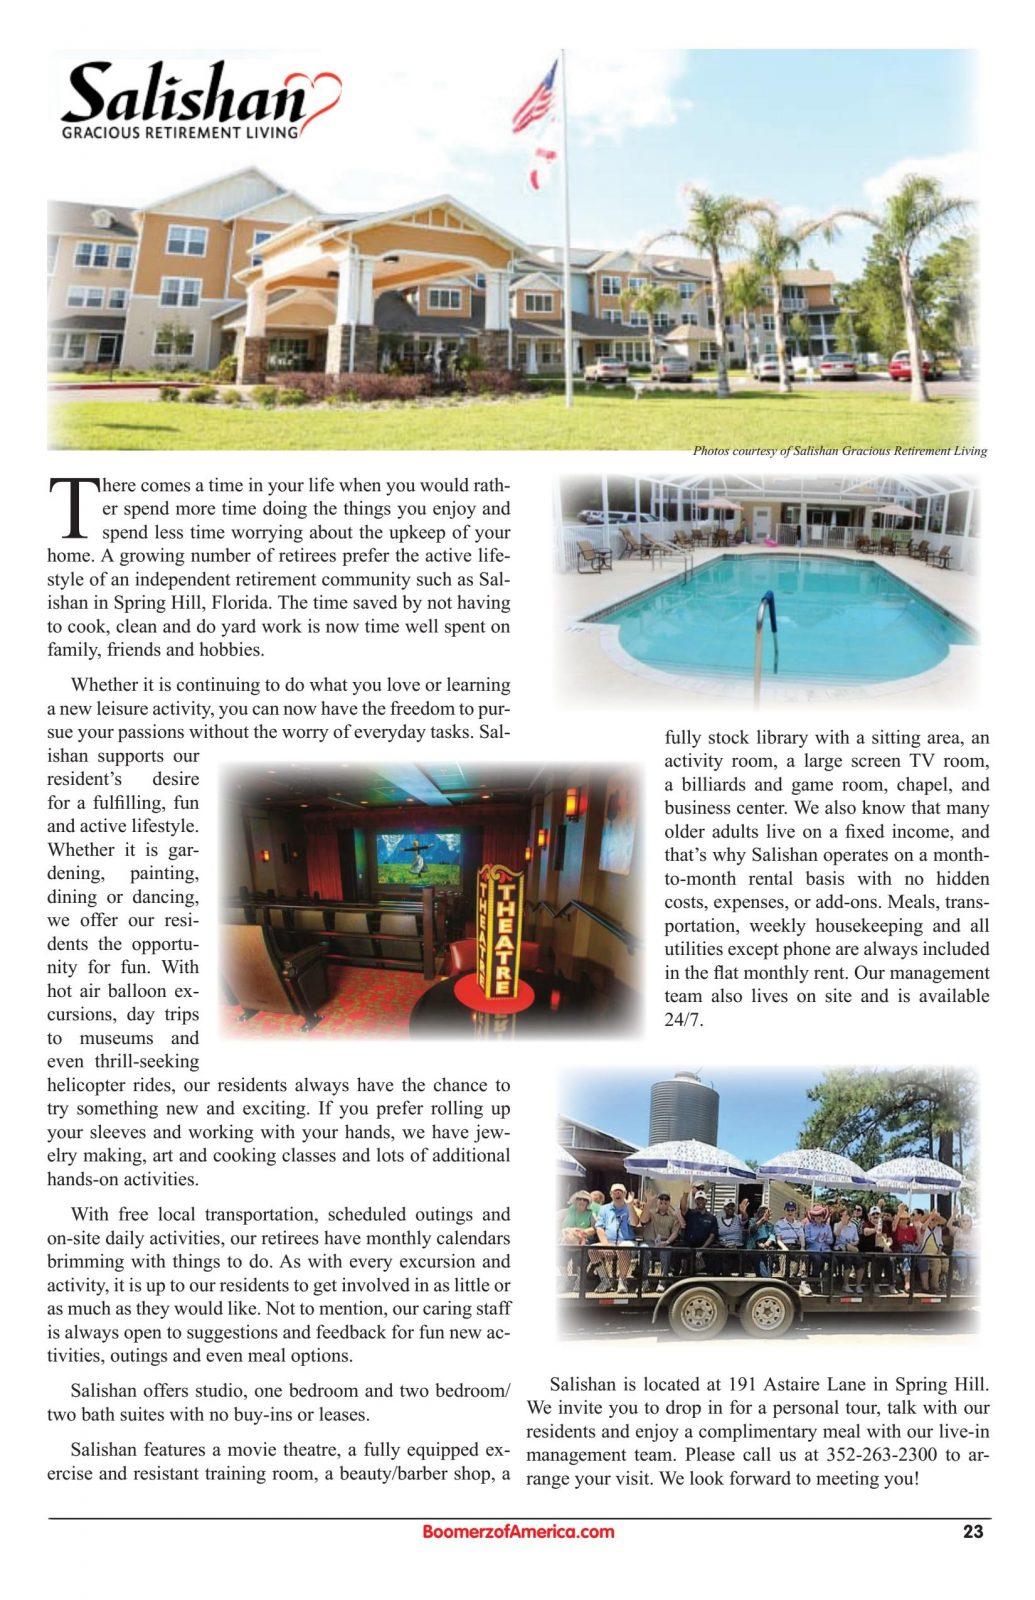 Salishan June 2019 Article in Boomerz of America Magazine